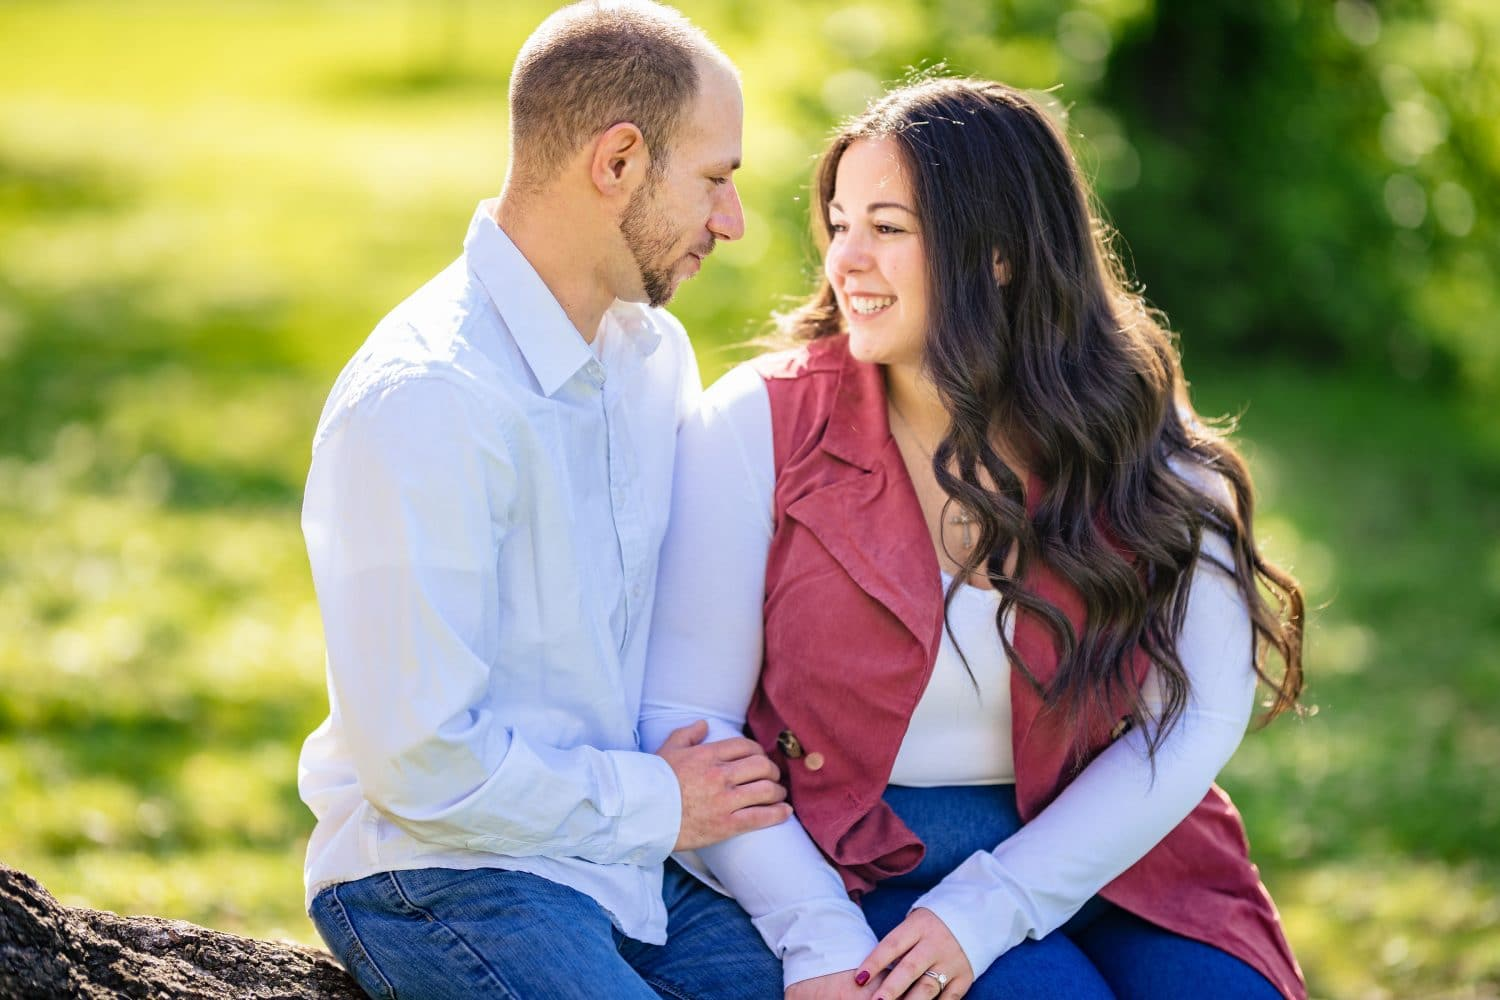 Couple smiling and laughing in park